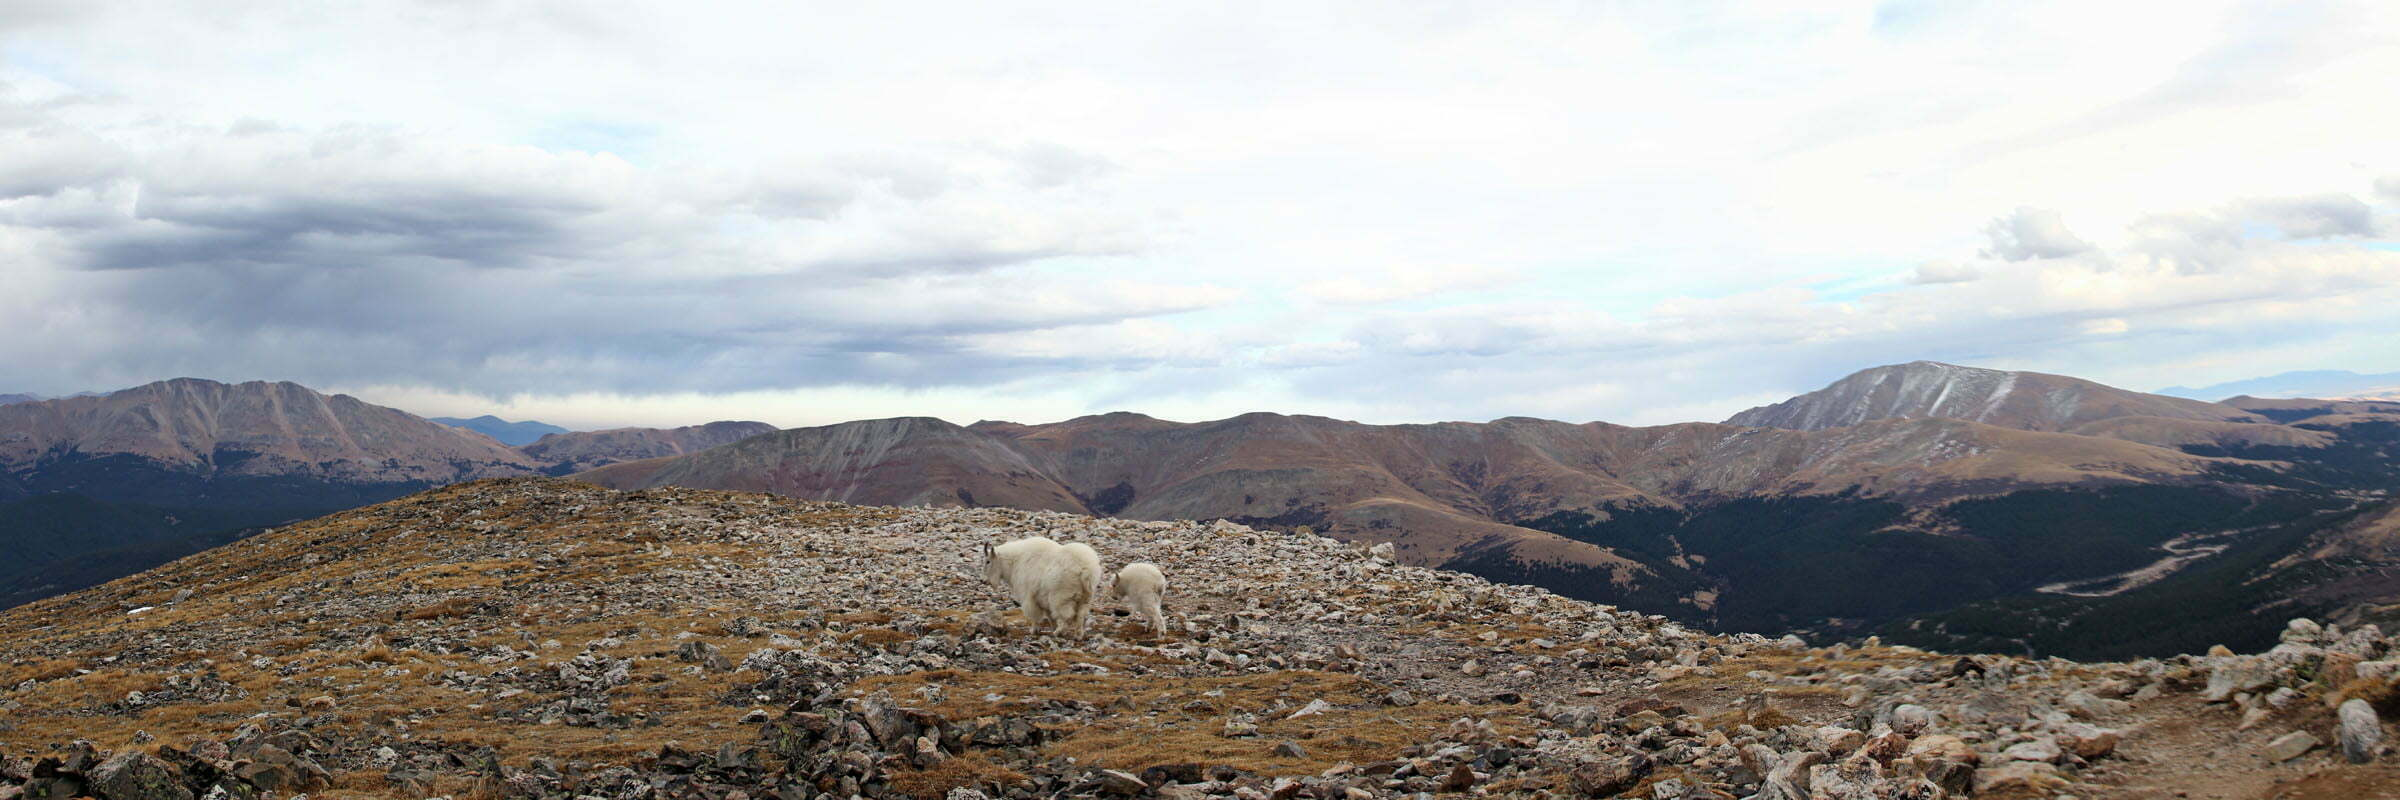 A panoramic photo of the mountains of Colorado with two mountain goats front and center.